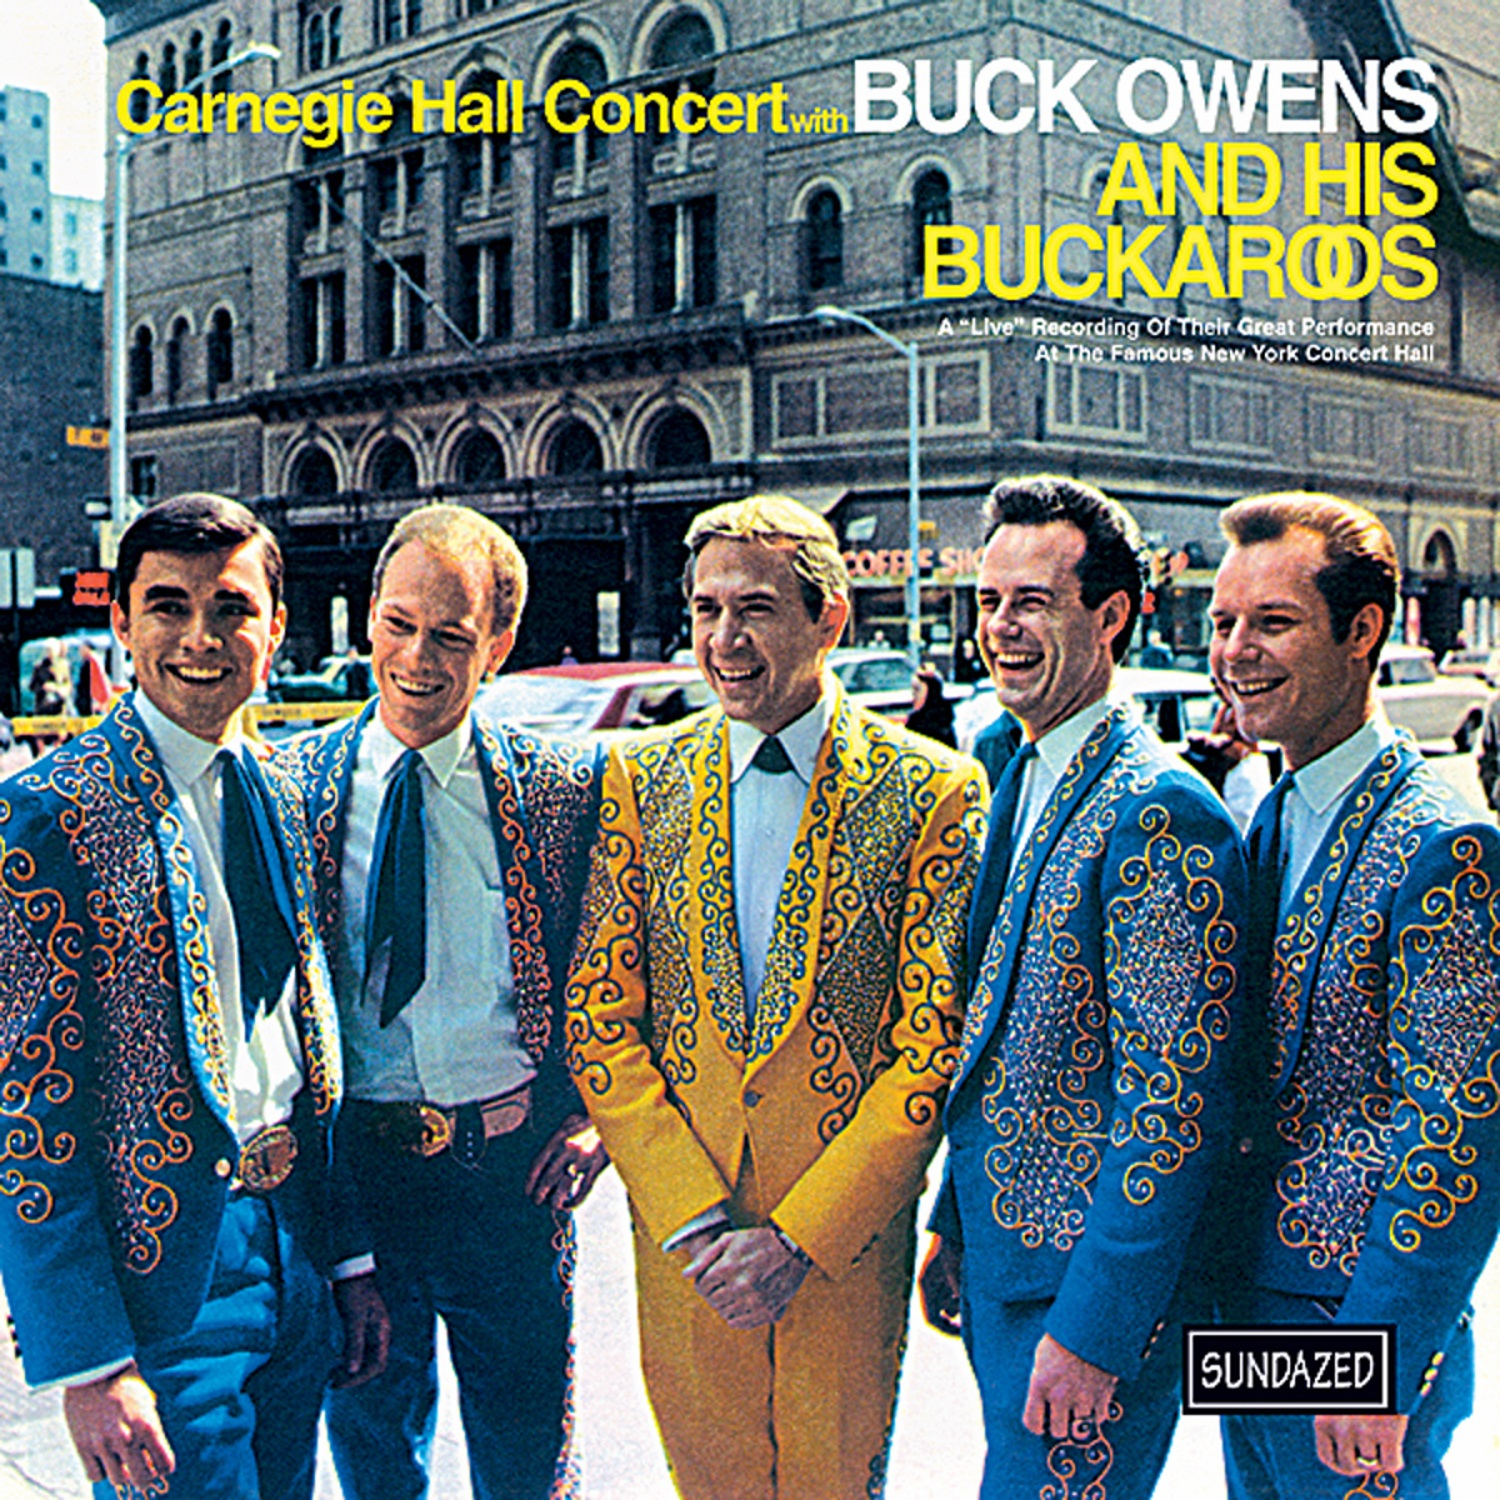 Owens, Buck and His Buckaroos - Carnegie Hall Concert CD